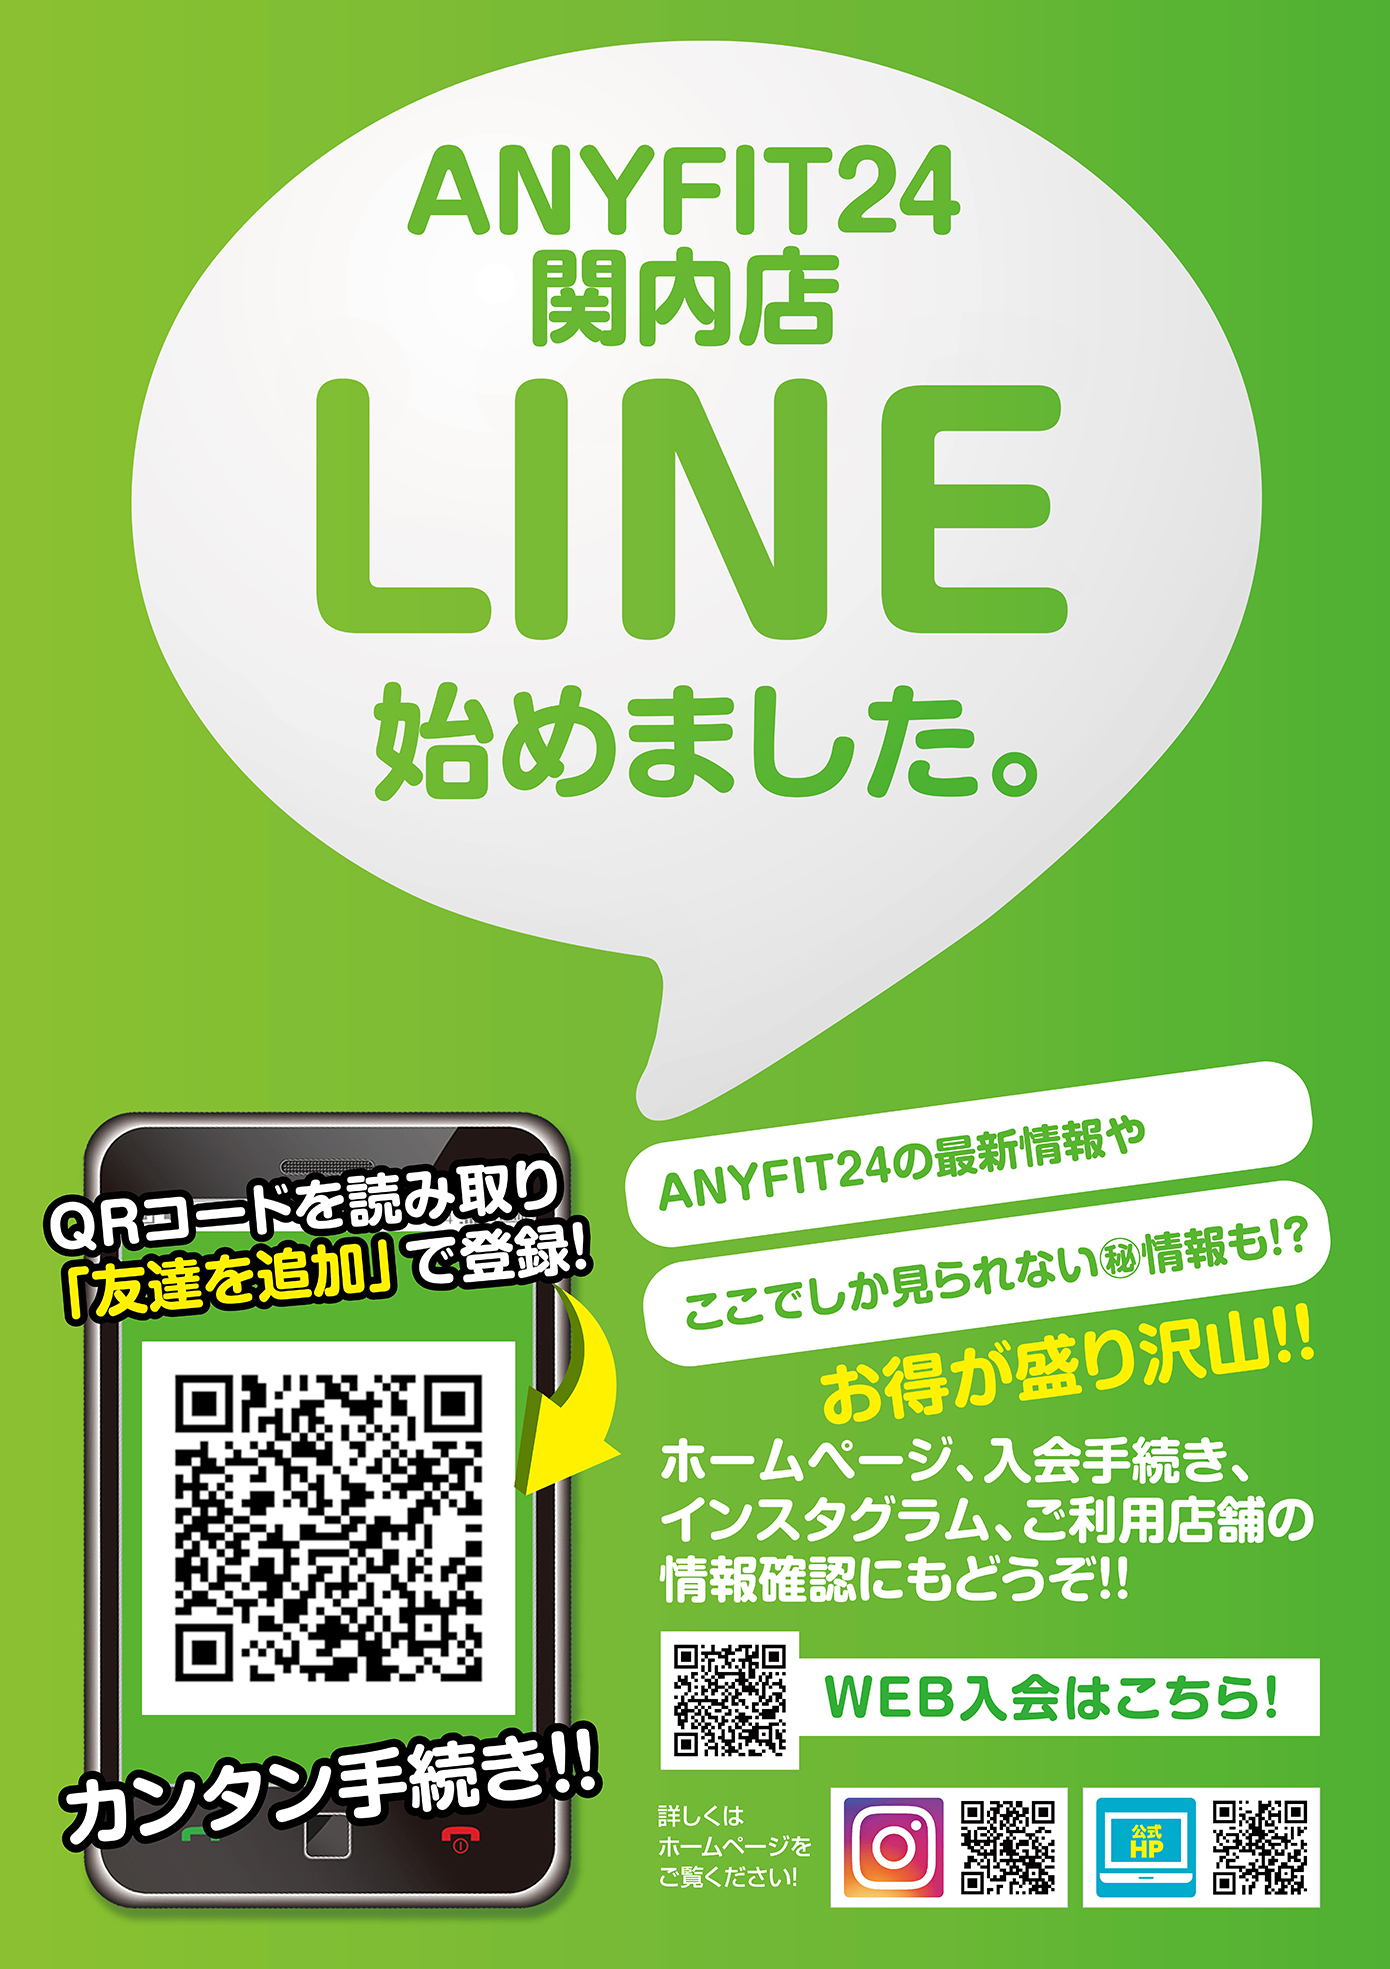 ANYFIT24各店舗、公式LINEアカウントができました!